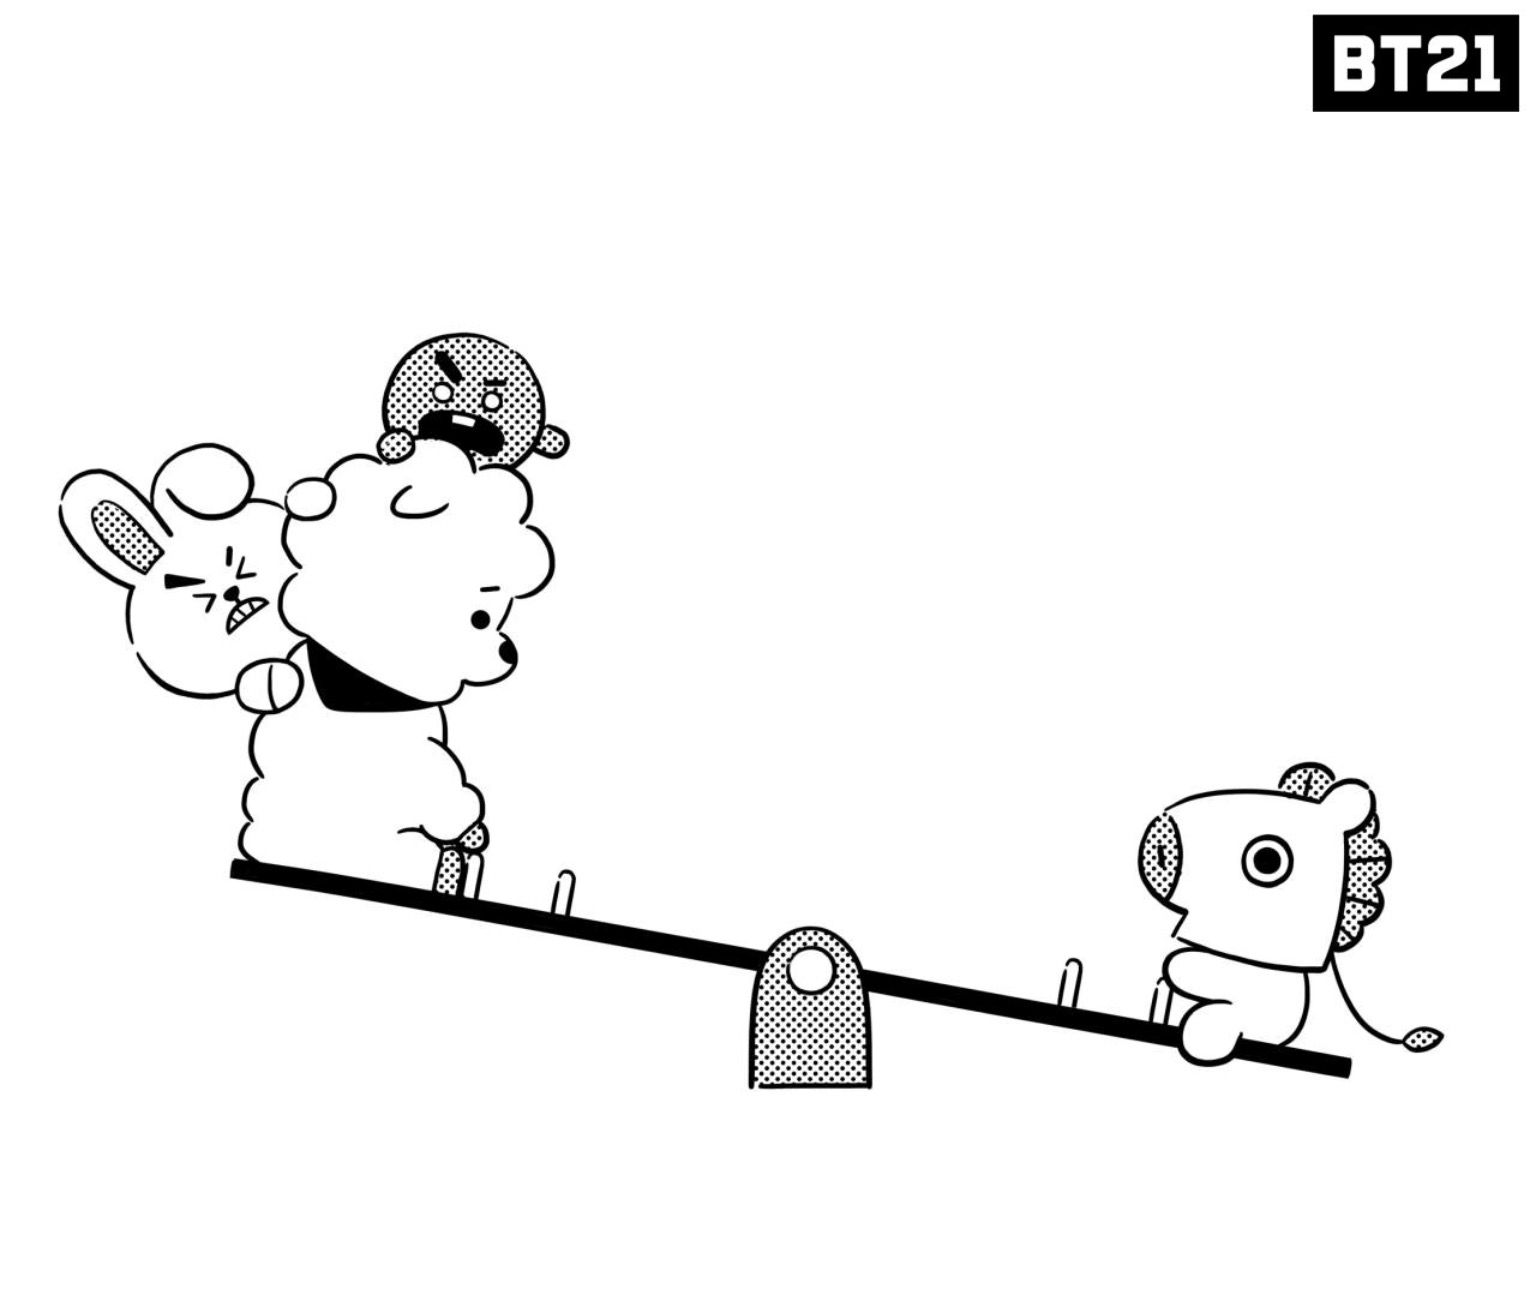 Pin By Nrlnabeela On Let S Draw Bts Drawings Easy Cartoon